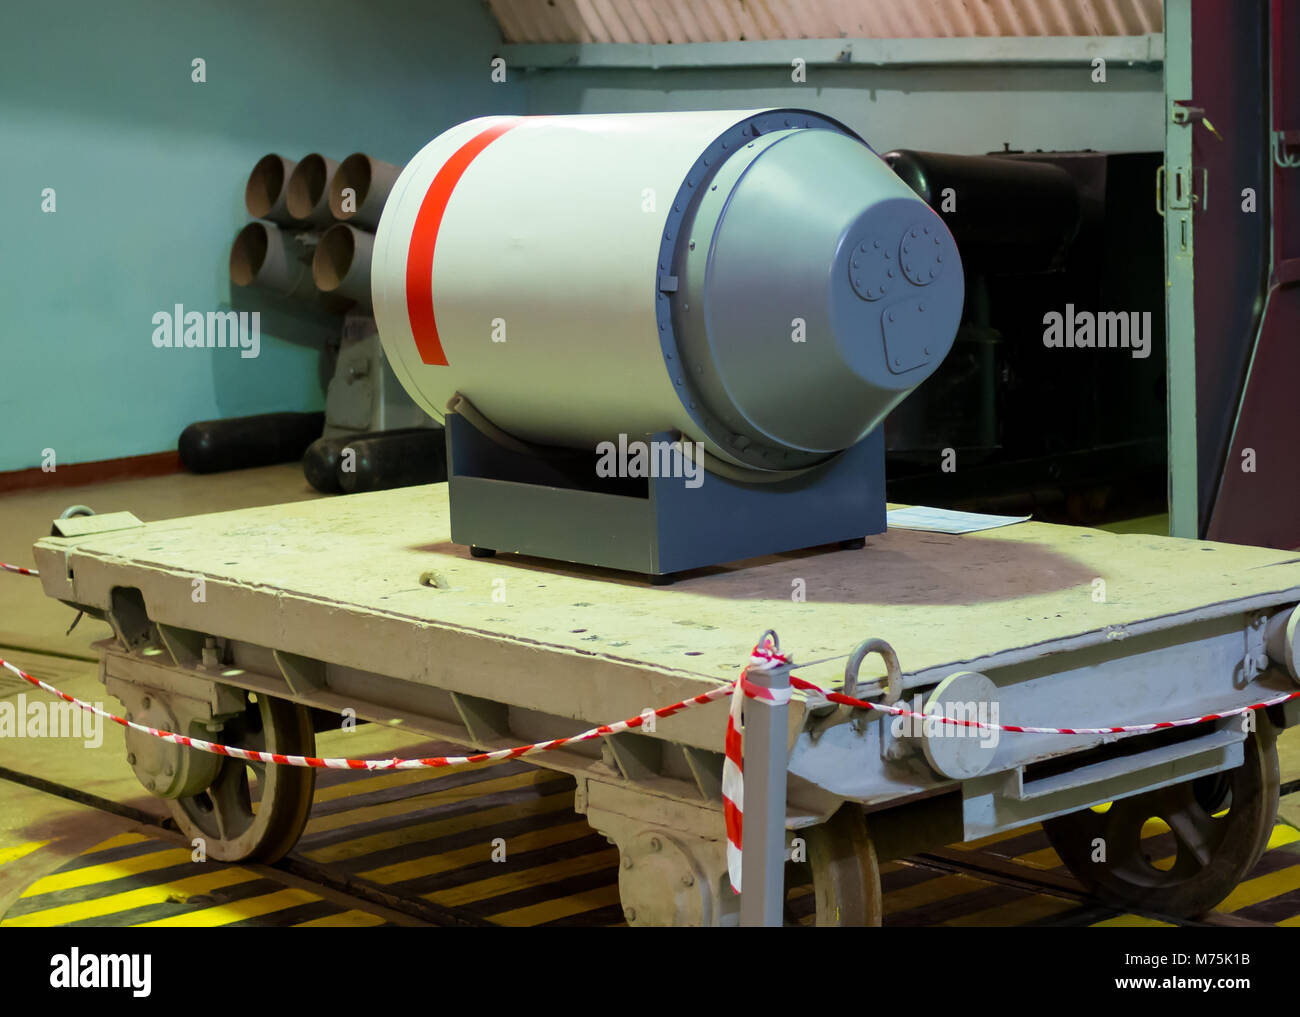 Balaklava, Russia - November 14, 2015: Layout nuclear warhead torpedoes on object 820 RTB: local area nuclear arsenal, - Stock Image